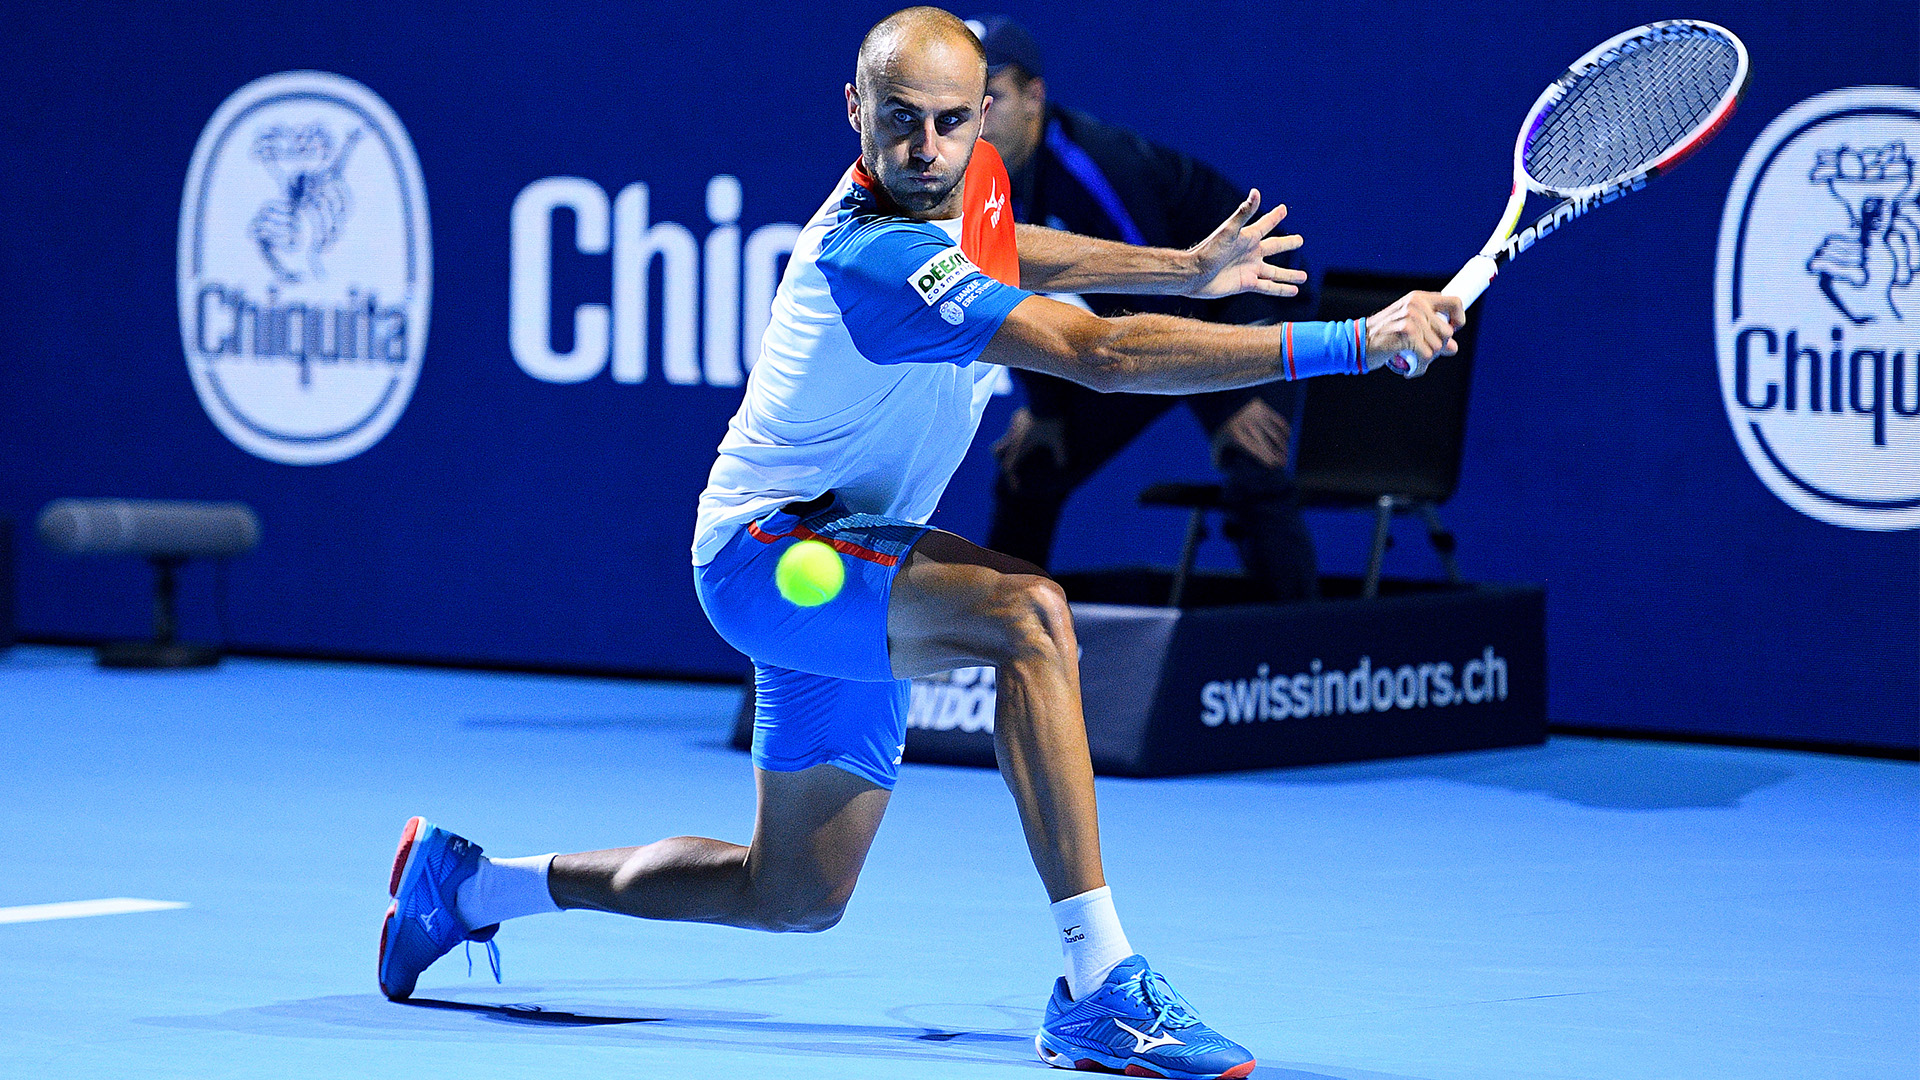 Copil se califica in finala turneului Swiss Indoors